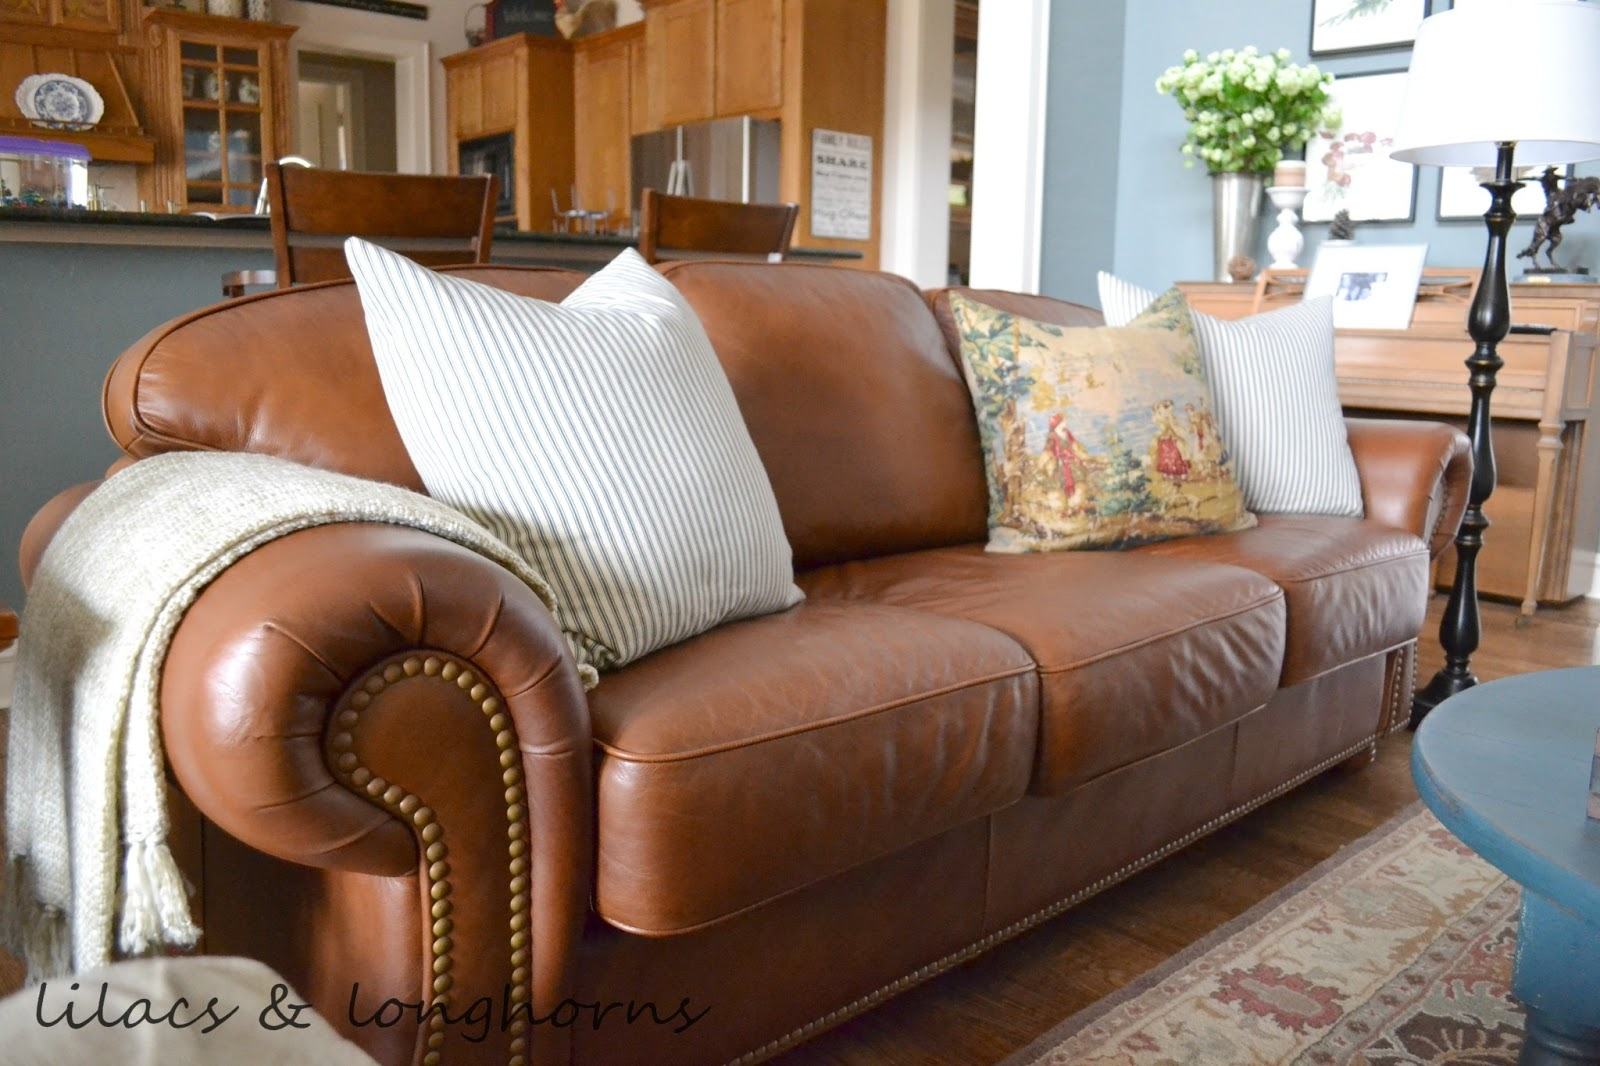 Repairing And Refurbishing Leather Furniture